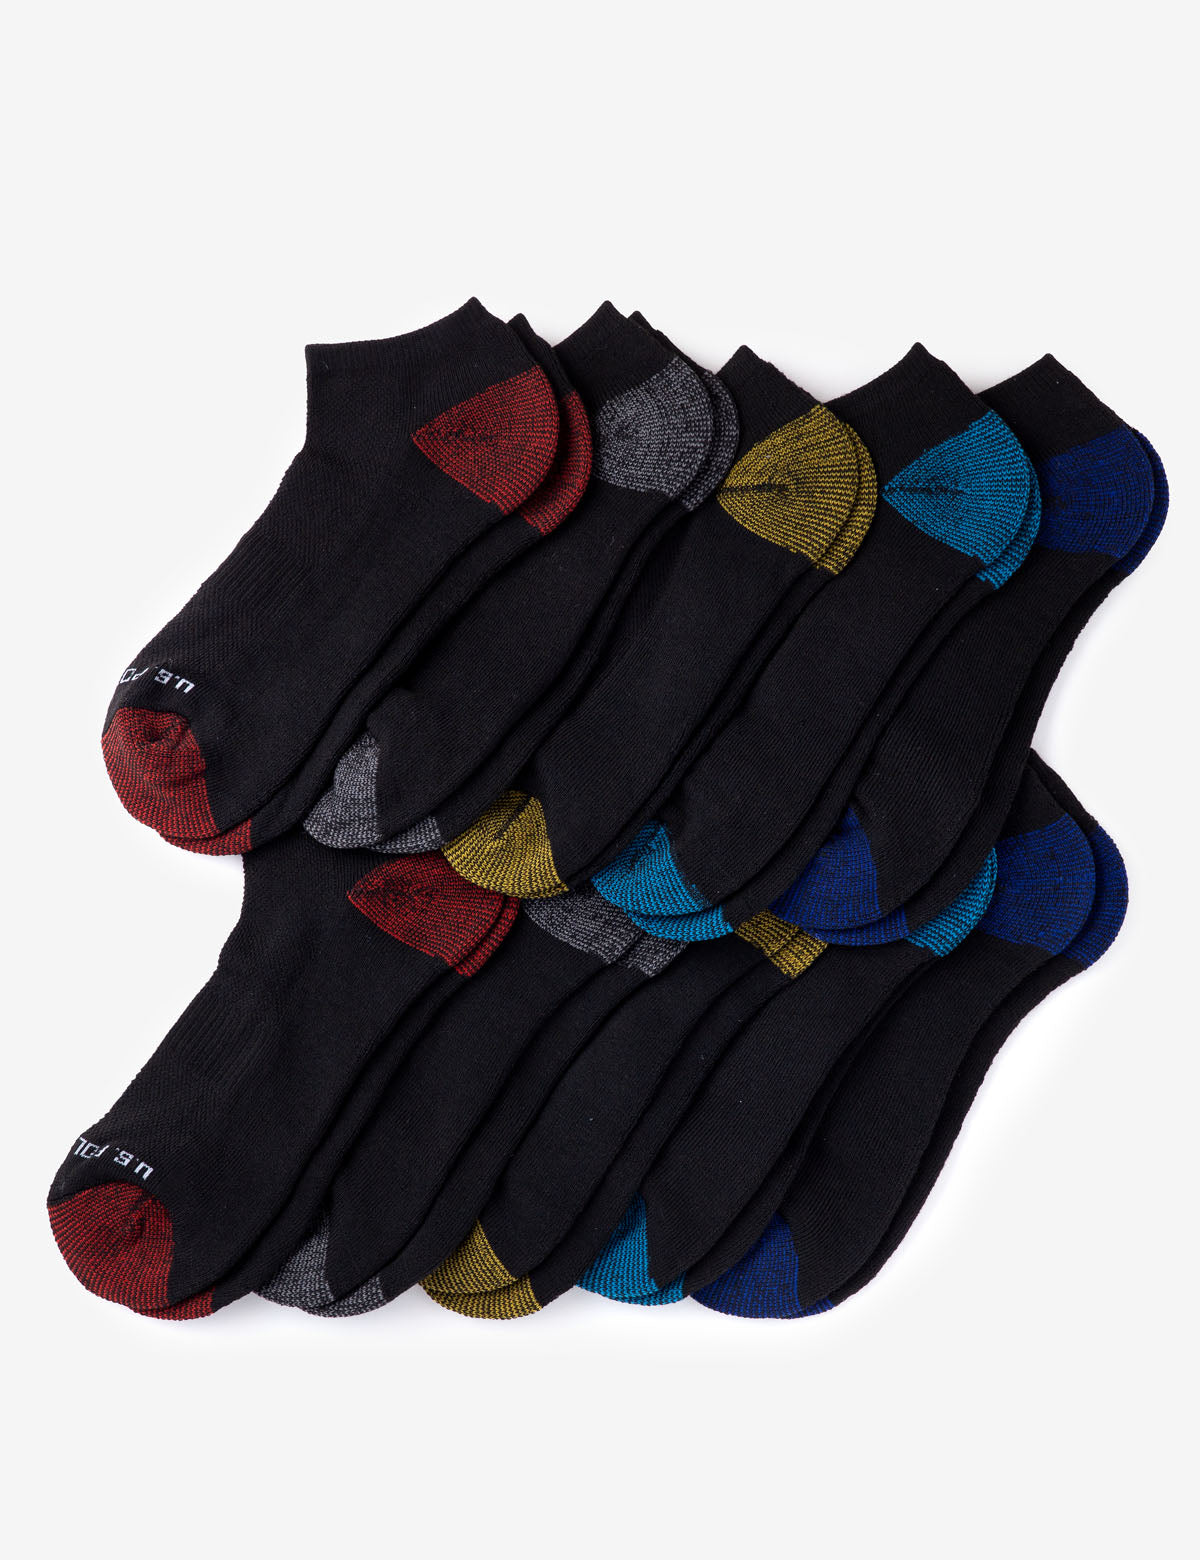 MENS 10 PACK PERFORMANCE LOW CUT SOCKS - U.S. Polo Assn.